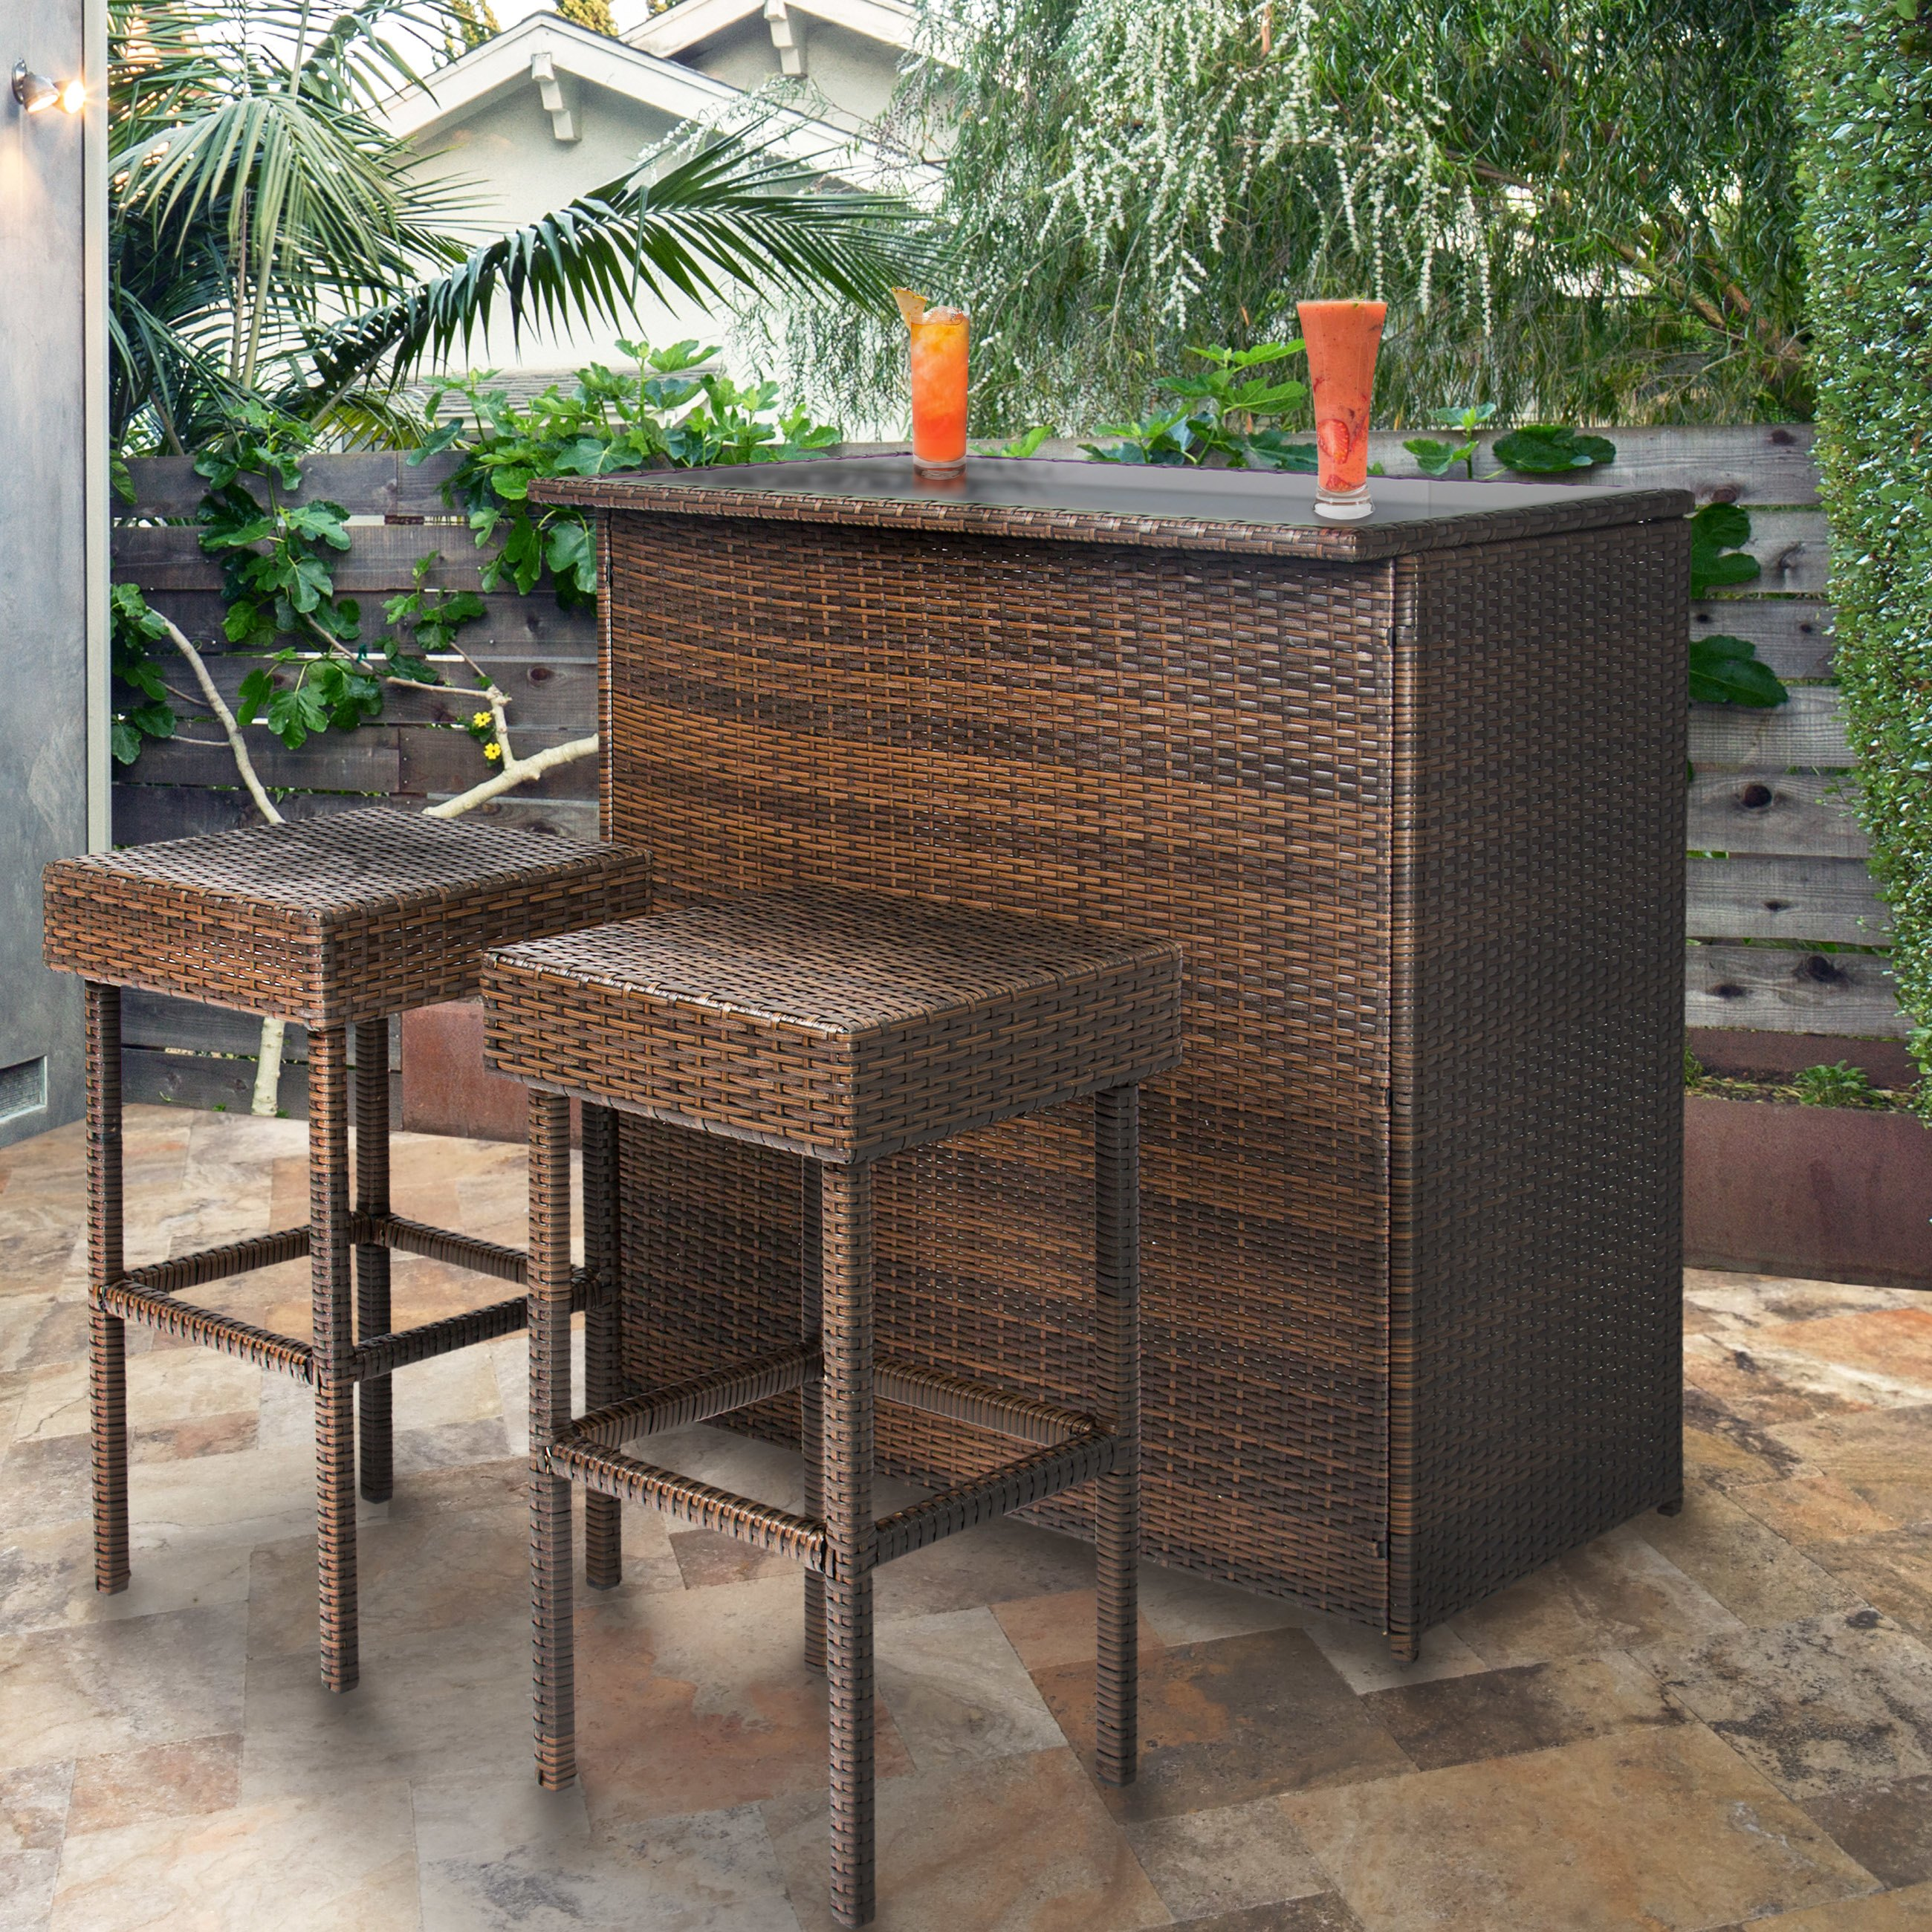 bestchoiceproducts best choice products wicker bar set patio outdoor woven metal accent table threshold backyard stools rattan garden nautical kitchen decor whole covers ethan